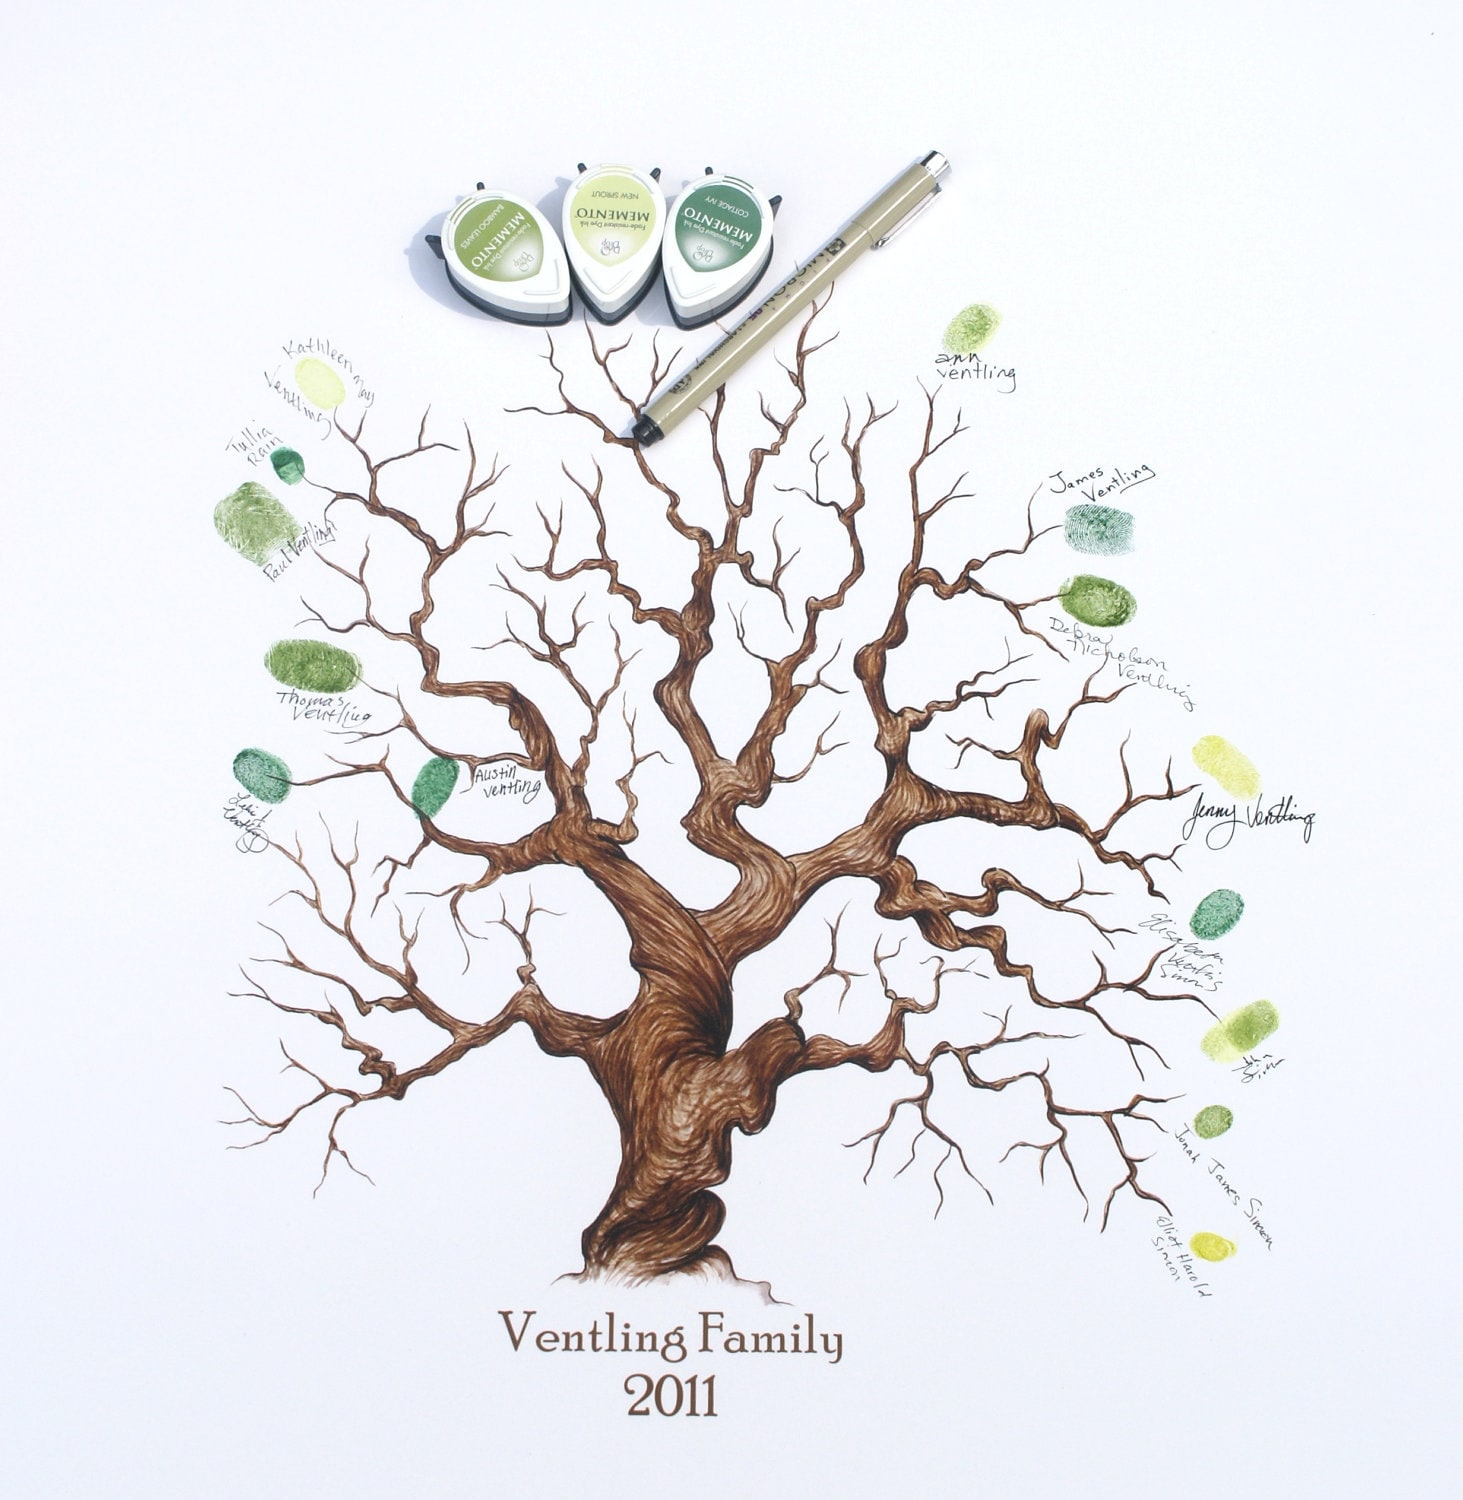 Family Reunion Tree Images Or family reunion tree,